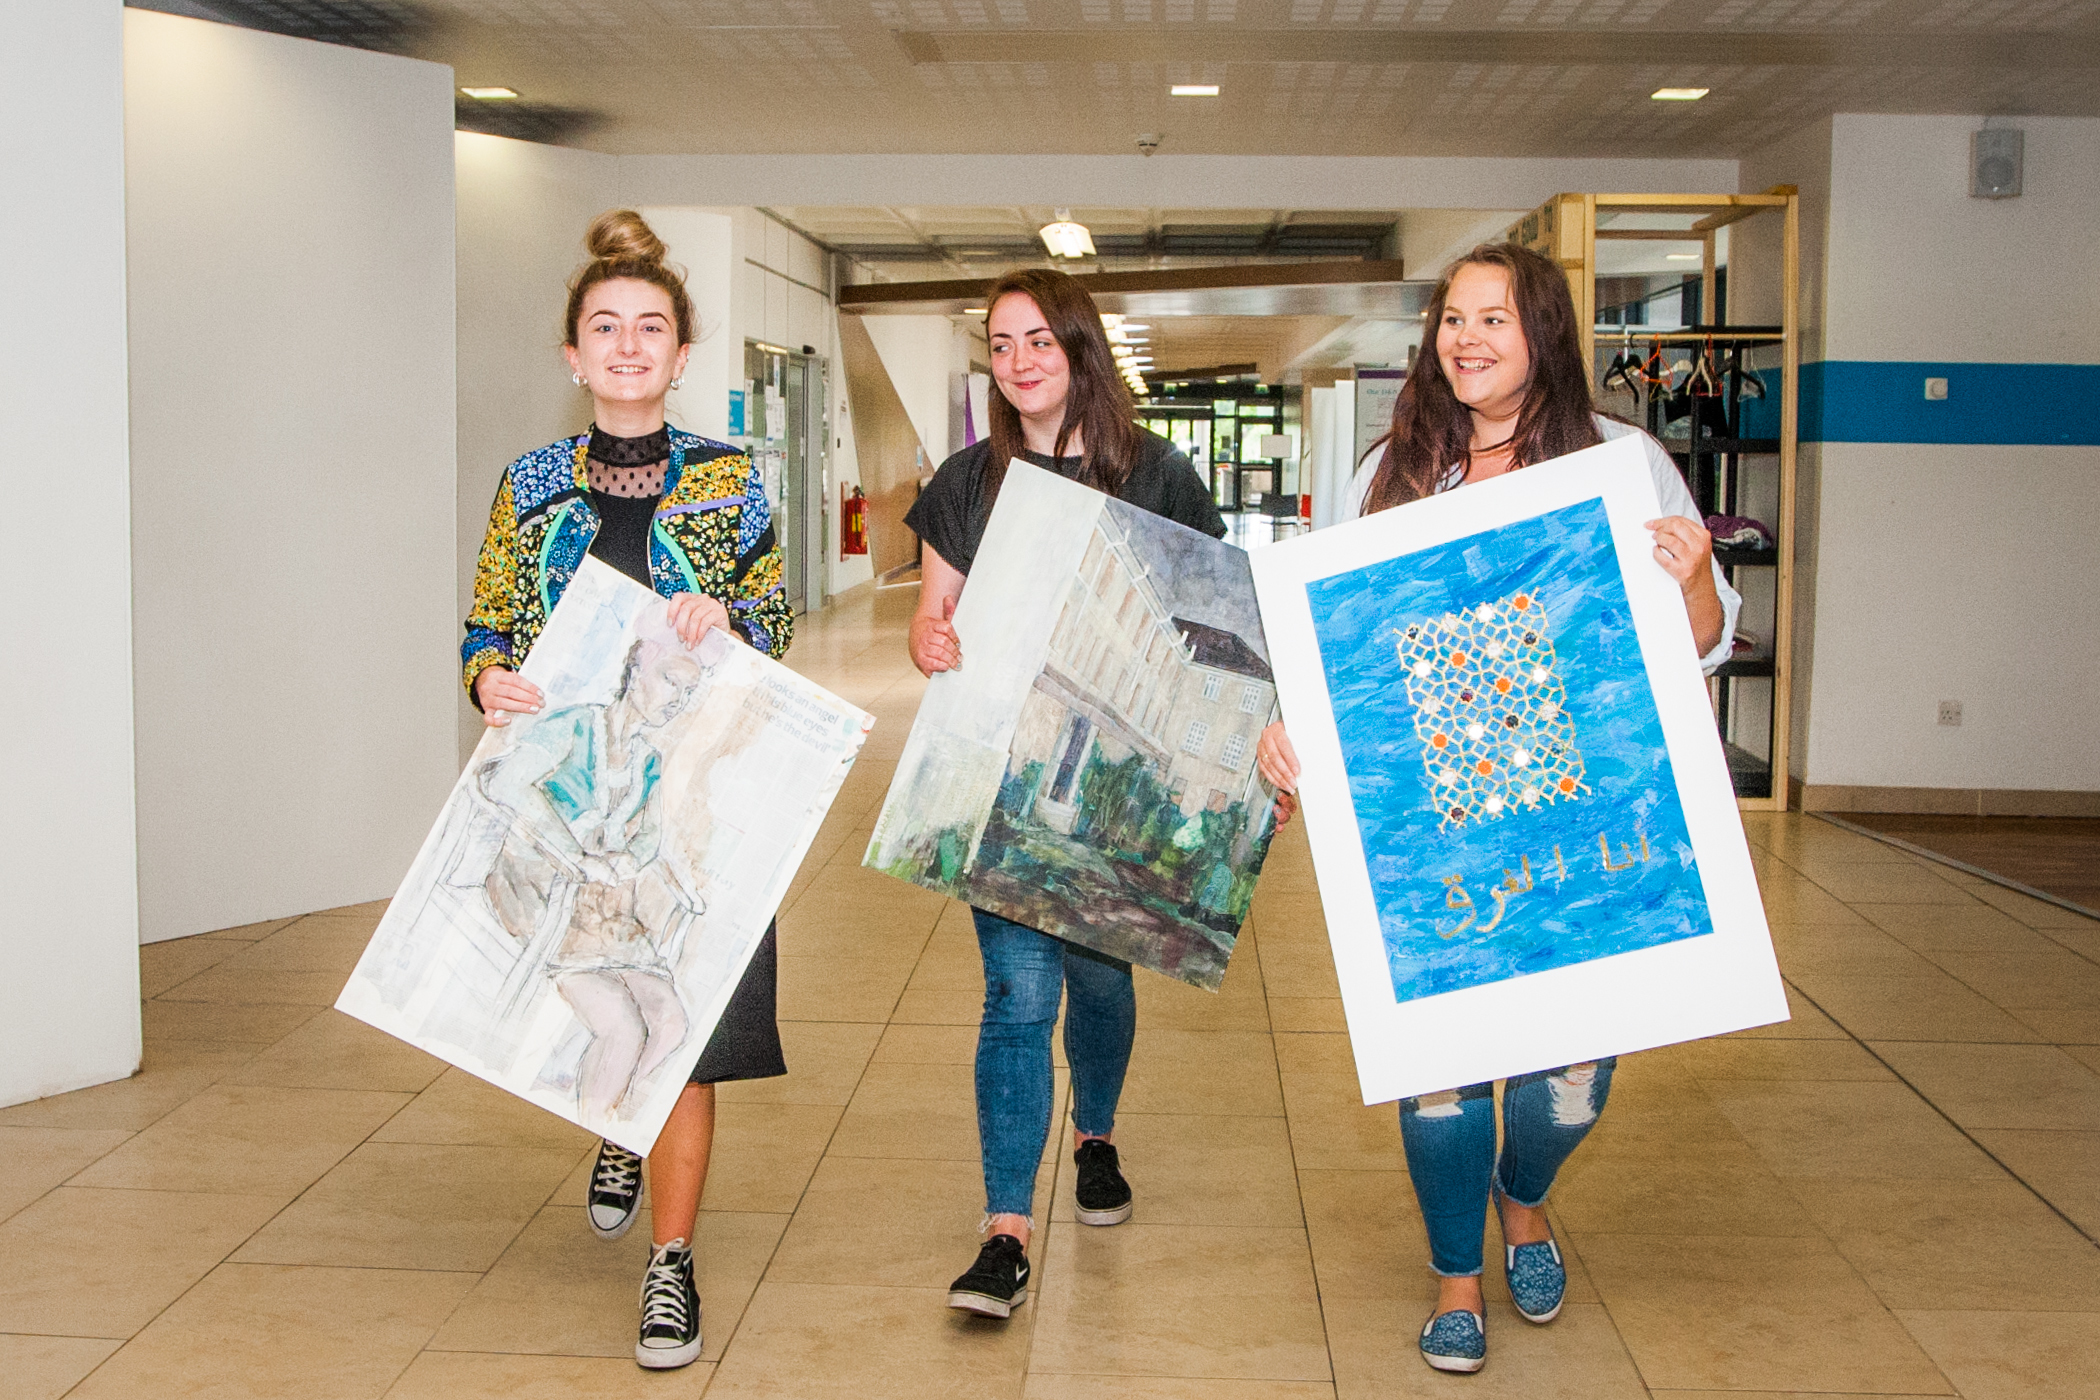 HND Contemporary Art Practice students (left to right) Charly Cussick (correct), Ashely Campbell and Catherine Nelson with some of their work.